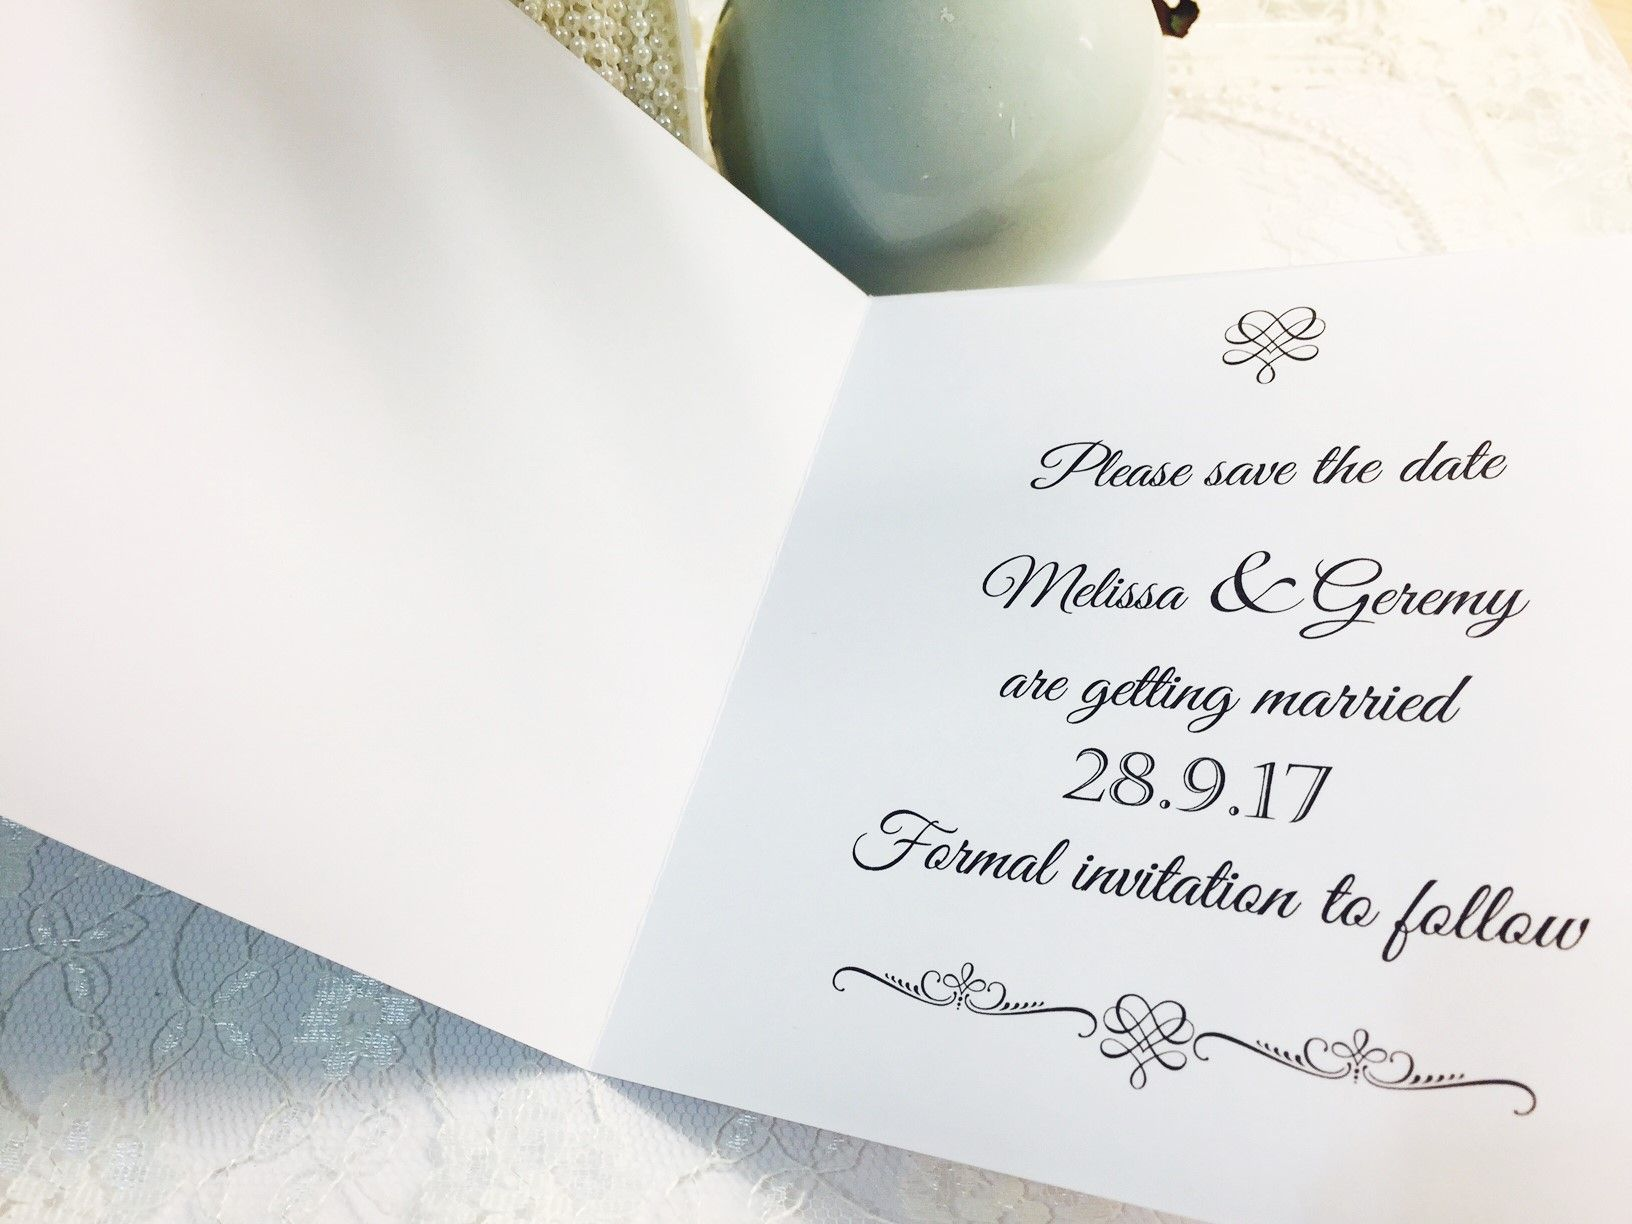 Traditional opening invitation card